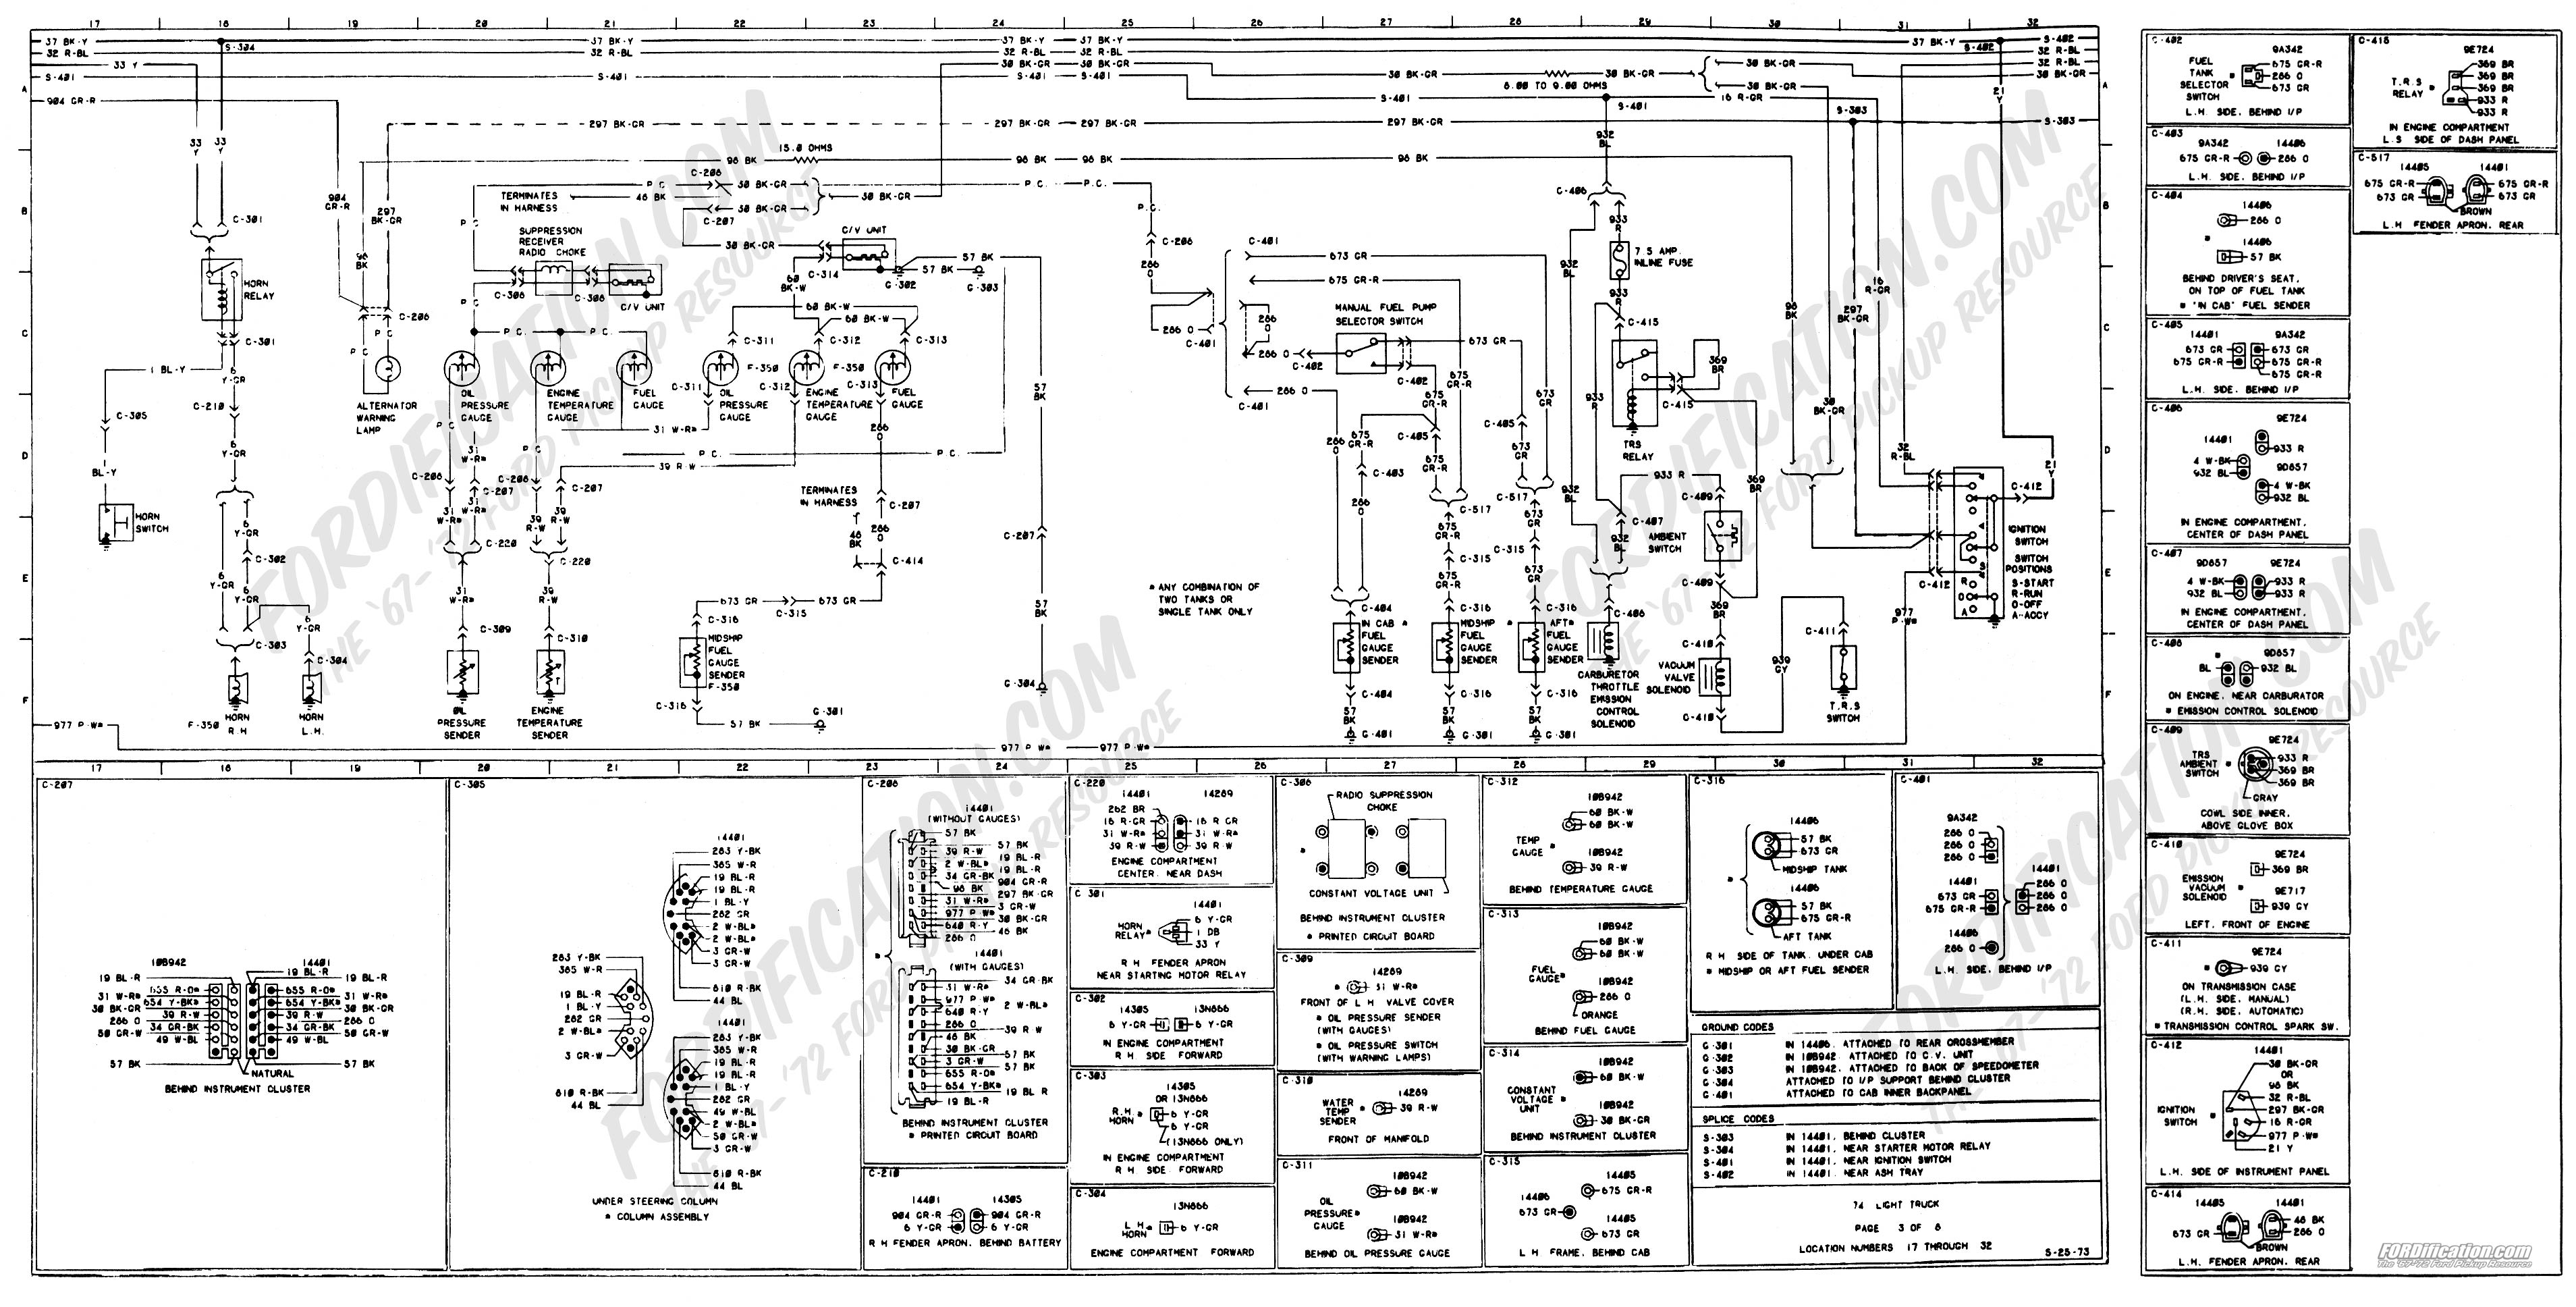 1056182 74 F100 Help With Wiring Diagram on 1994 ford van fuse diagram